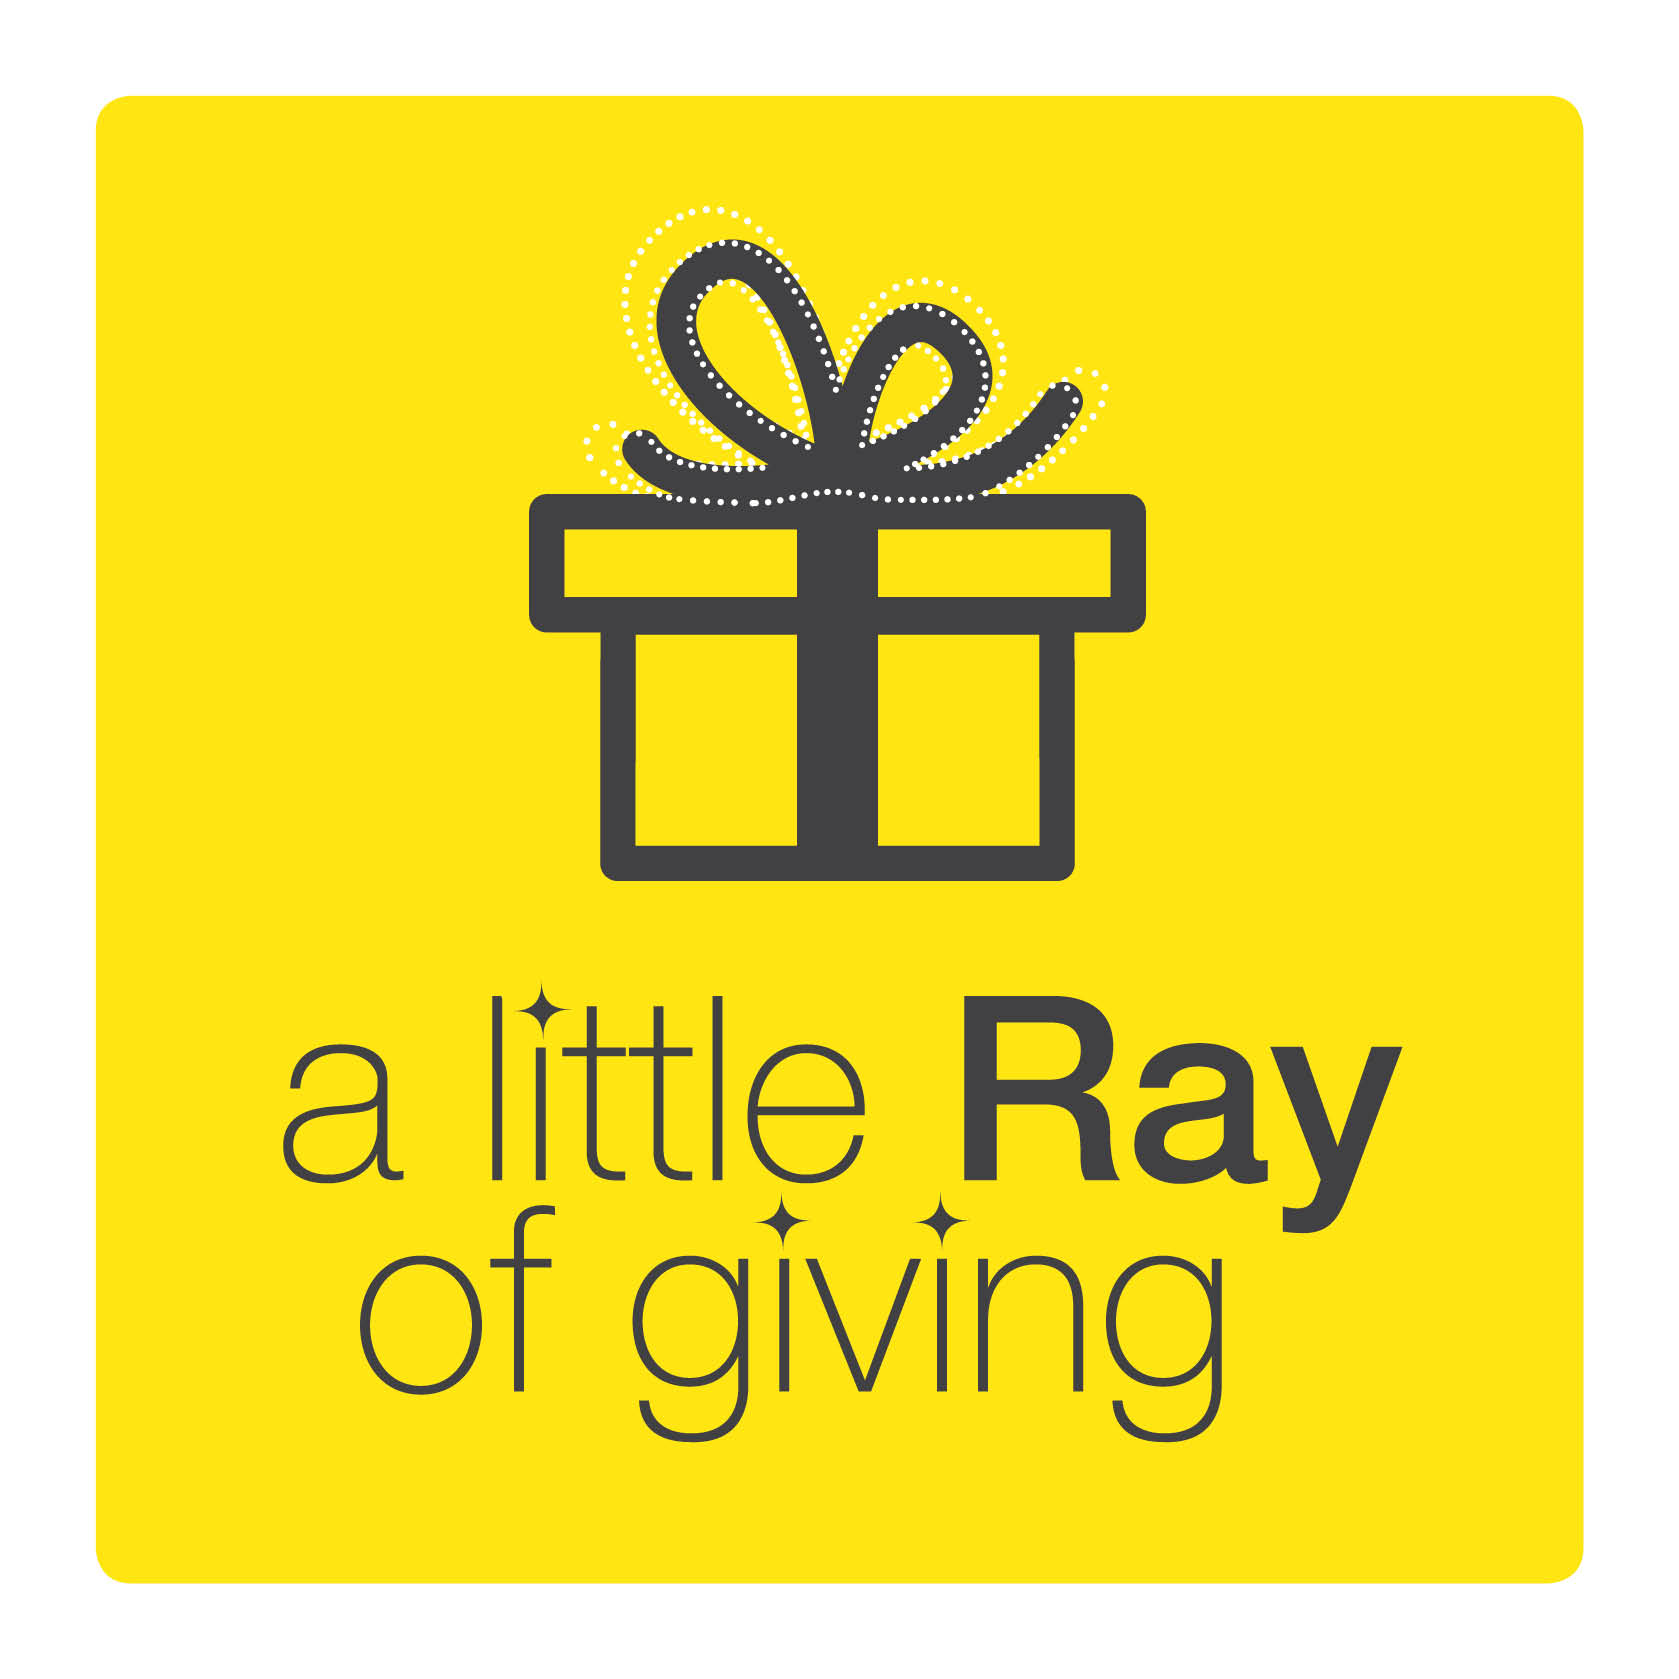 Facebook_instagram tile_A Little Ray of Giving_2014_Australia & NewZealand